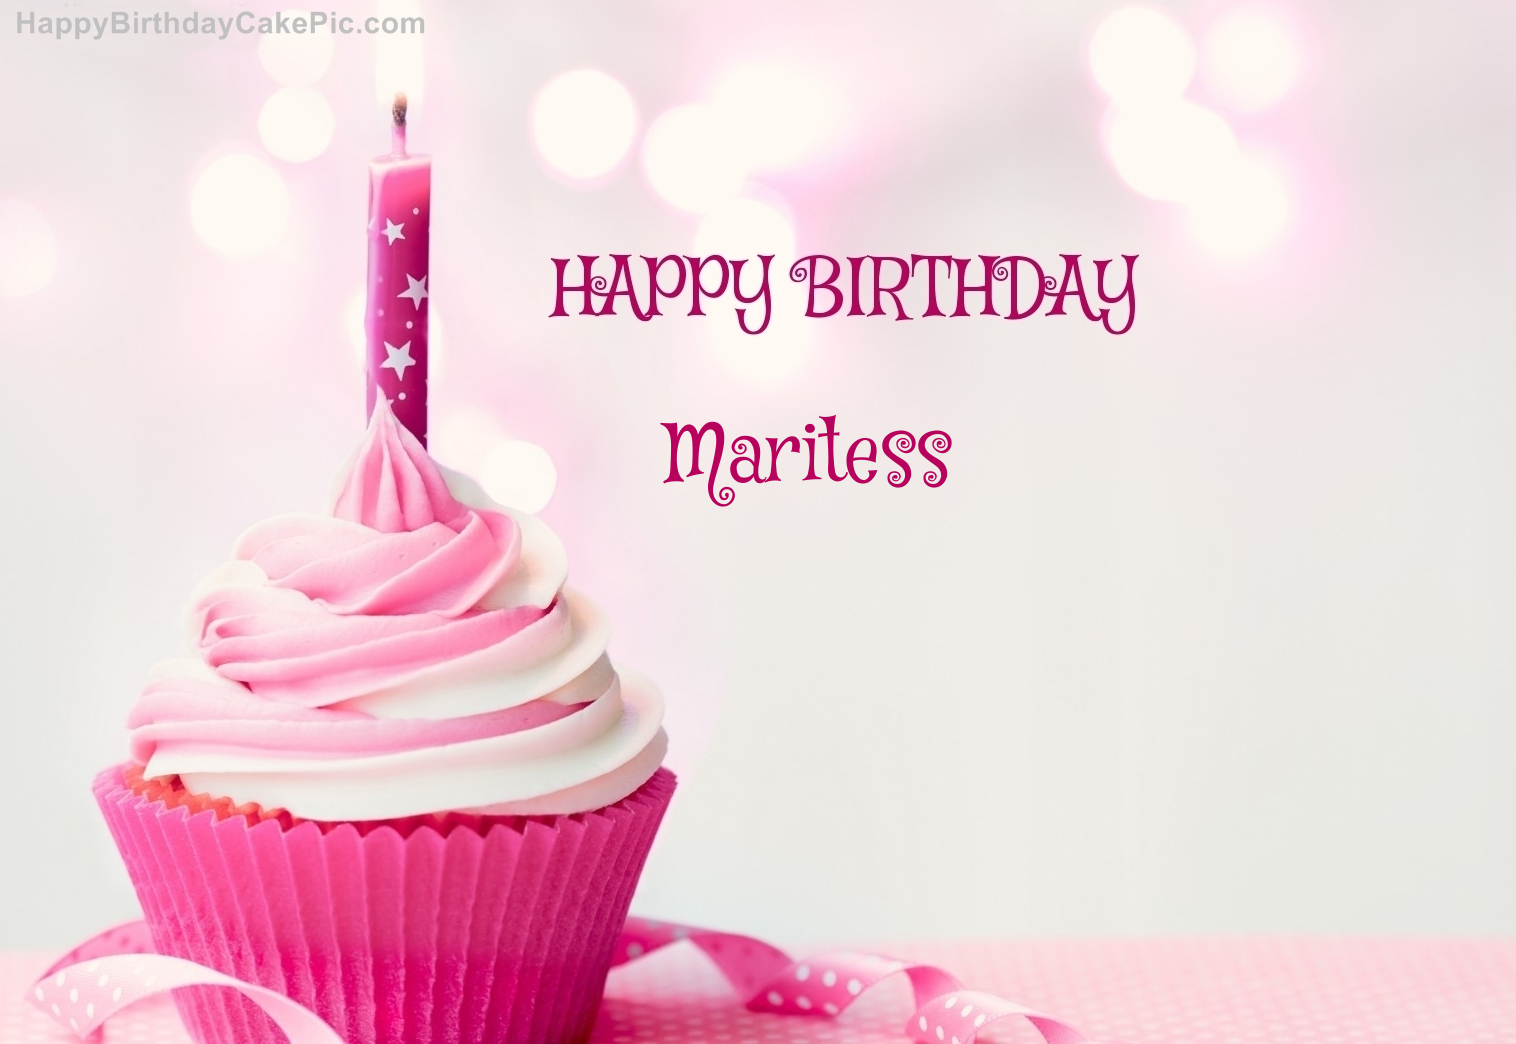 Happy Birthday Cupcake Candle Pink Cake For Maritess